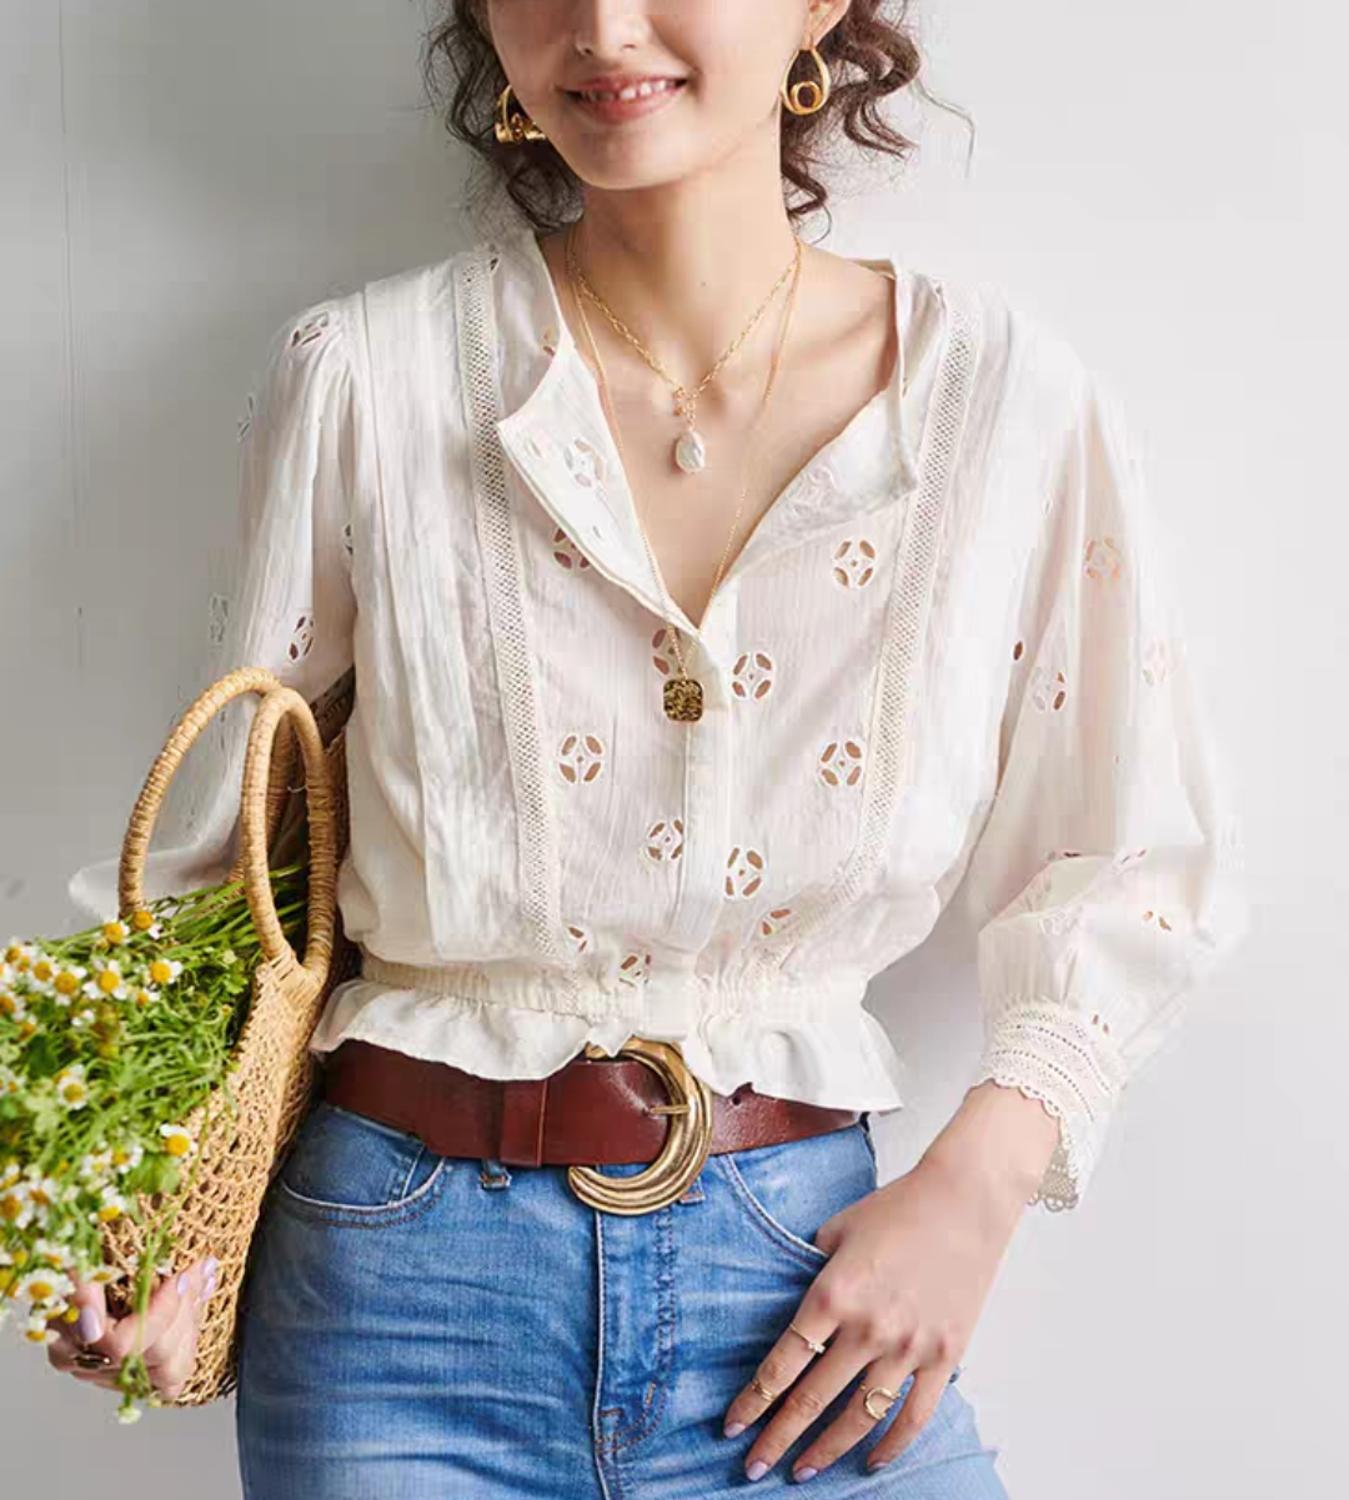 Temperament Embroidery Hollow Out Women Shirt 2020 New Ruffle 3/4 Sleeve Lady Shirt Tops